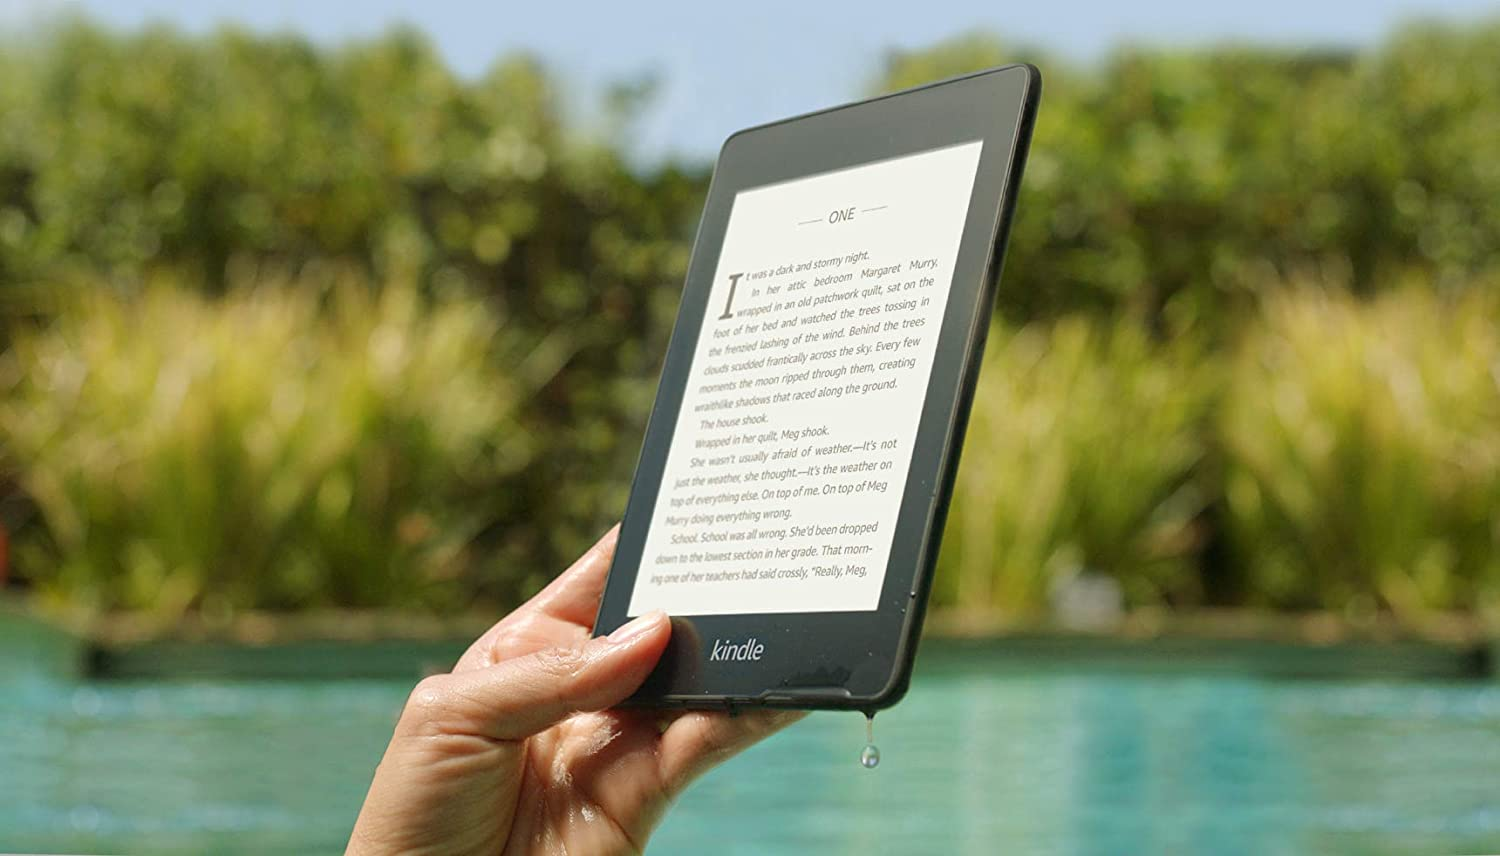 Kindle Paperwhite – Now Waterproof with greater than 2x the Storage, 32 GB, Wi-Fi + Free Cellular Connectivity